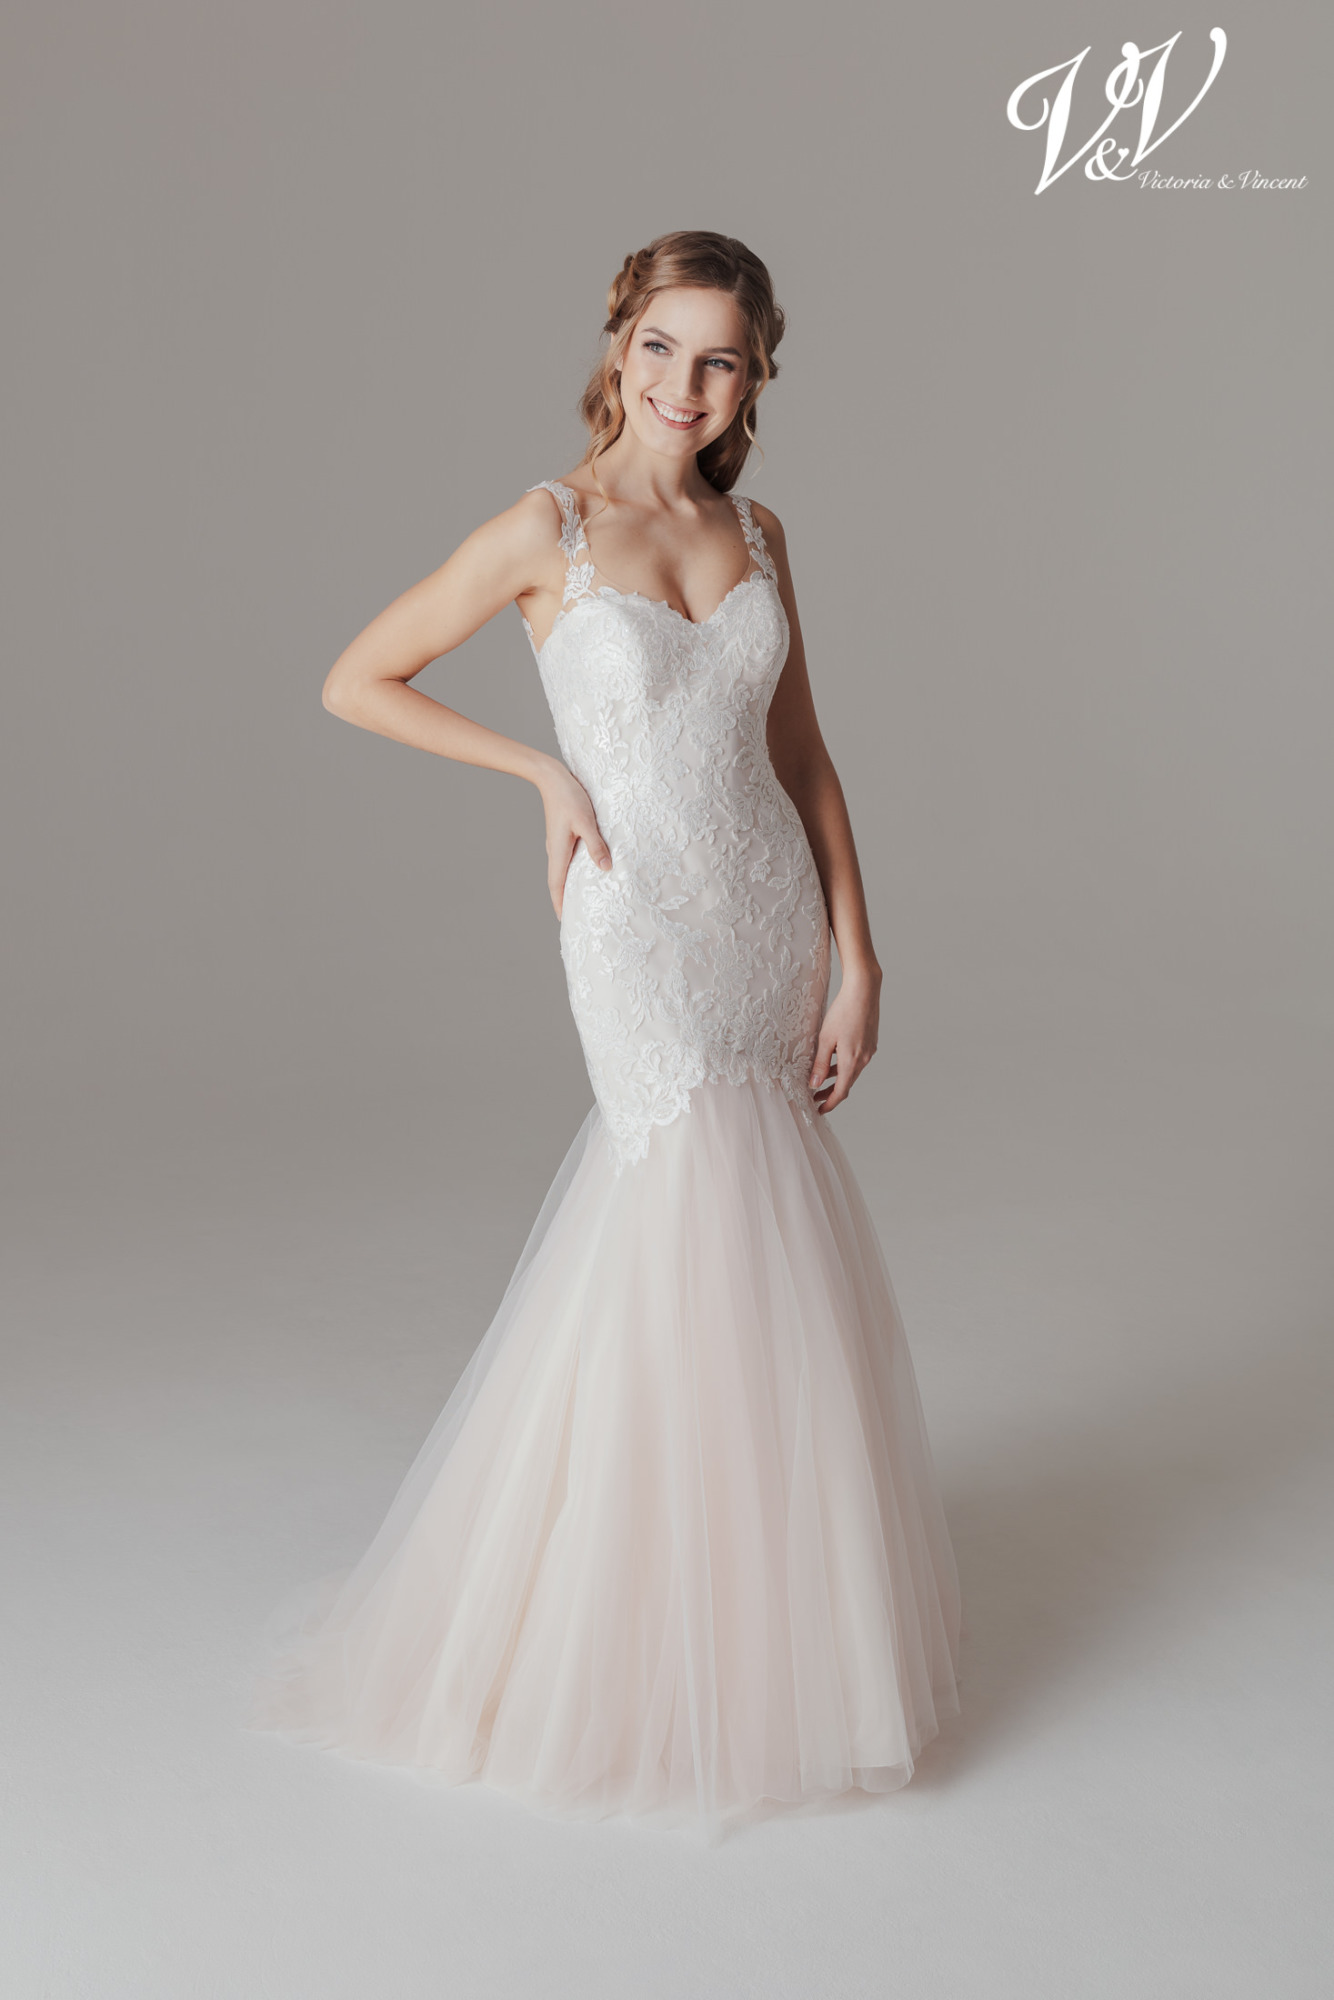 A mermaid wedding dress with a sweetheart neckline and an open back.